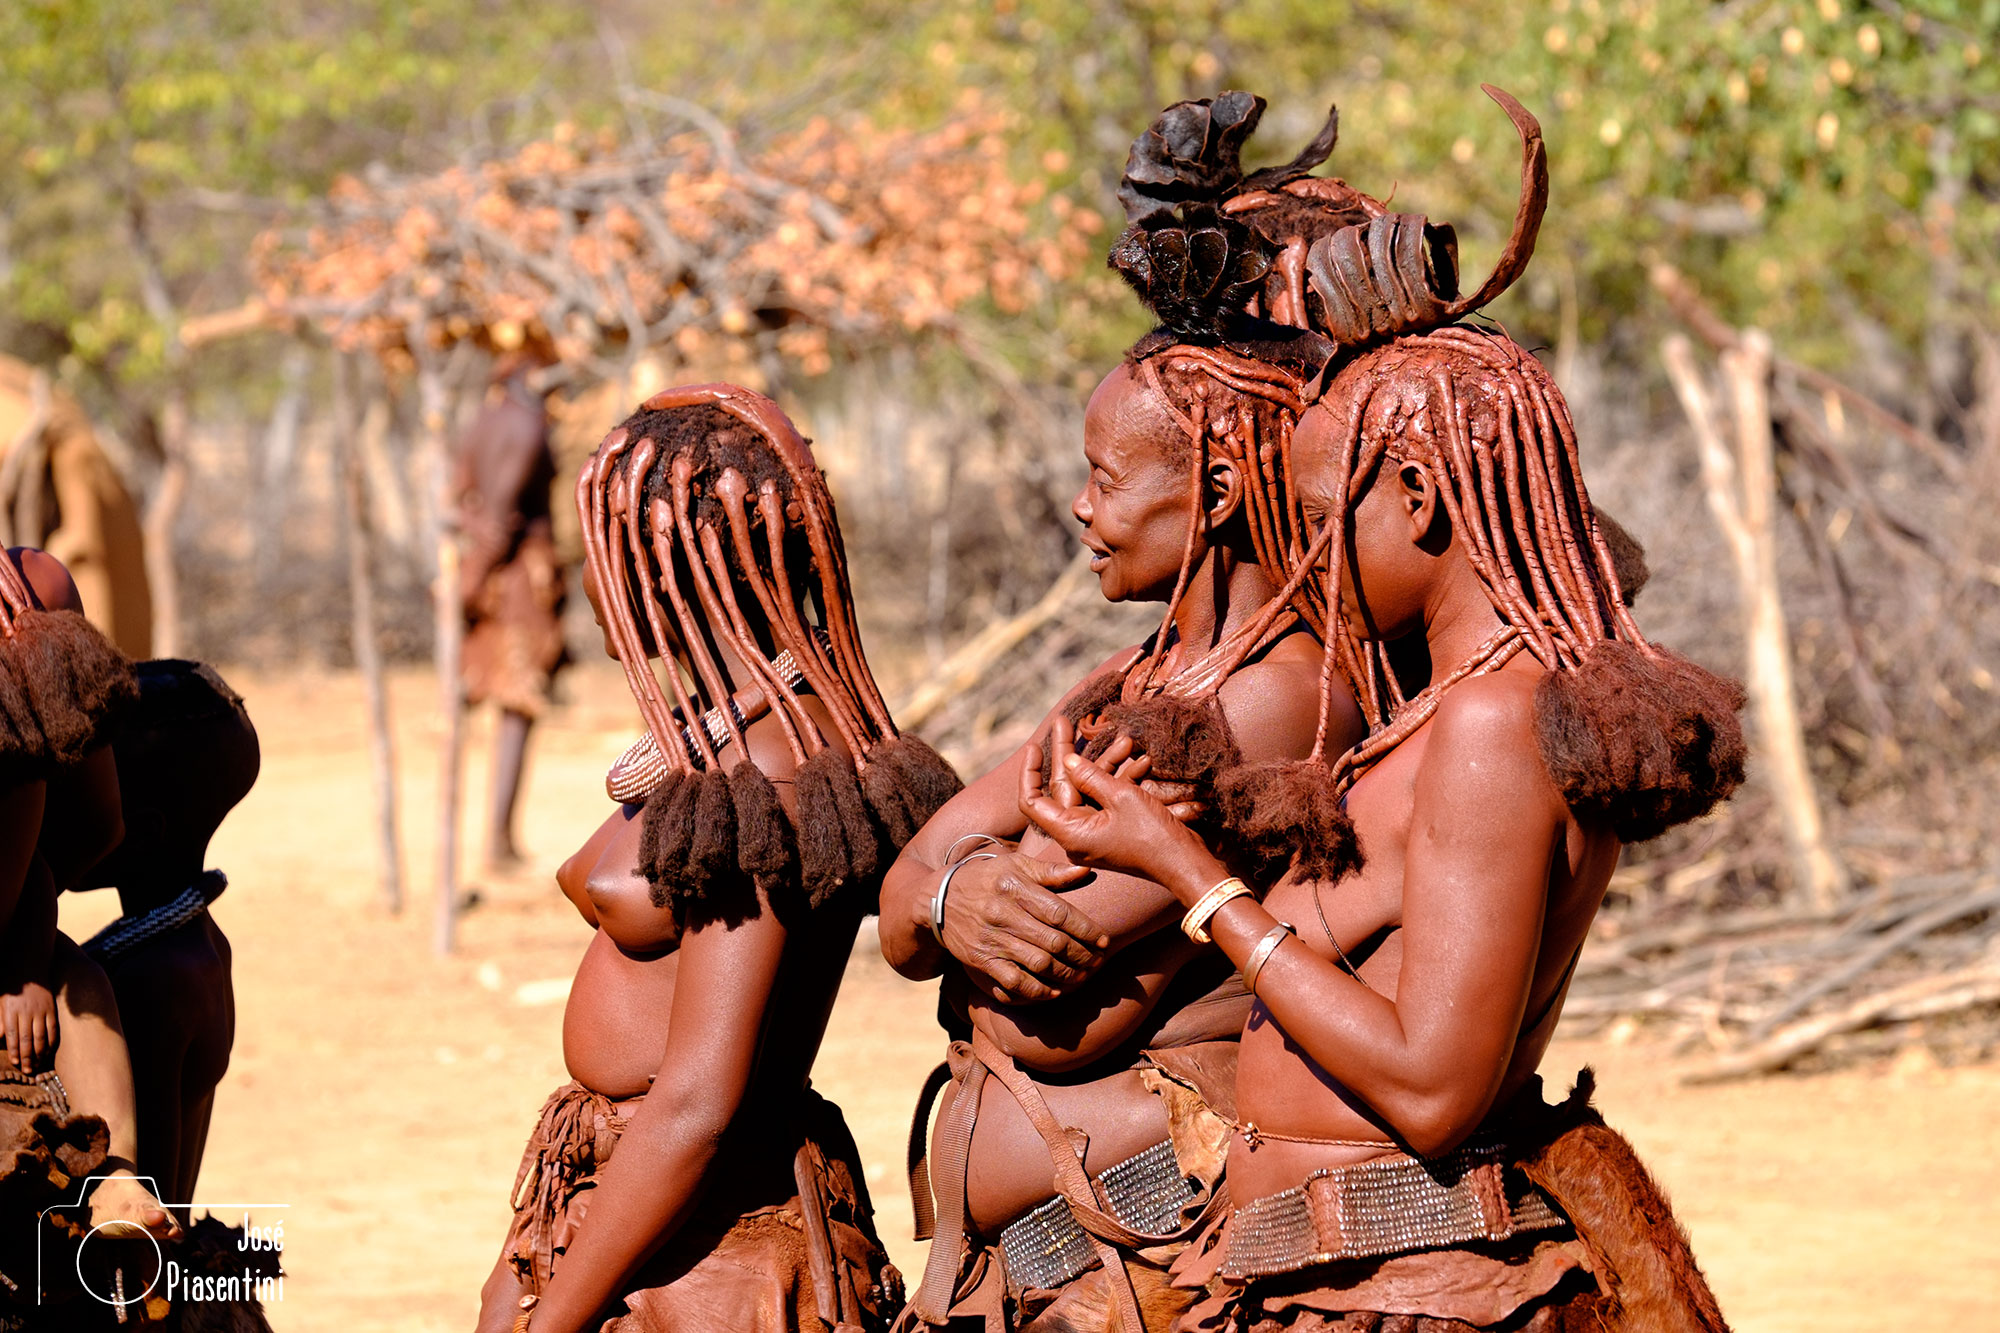 Himba tribal dancing